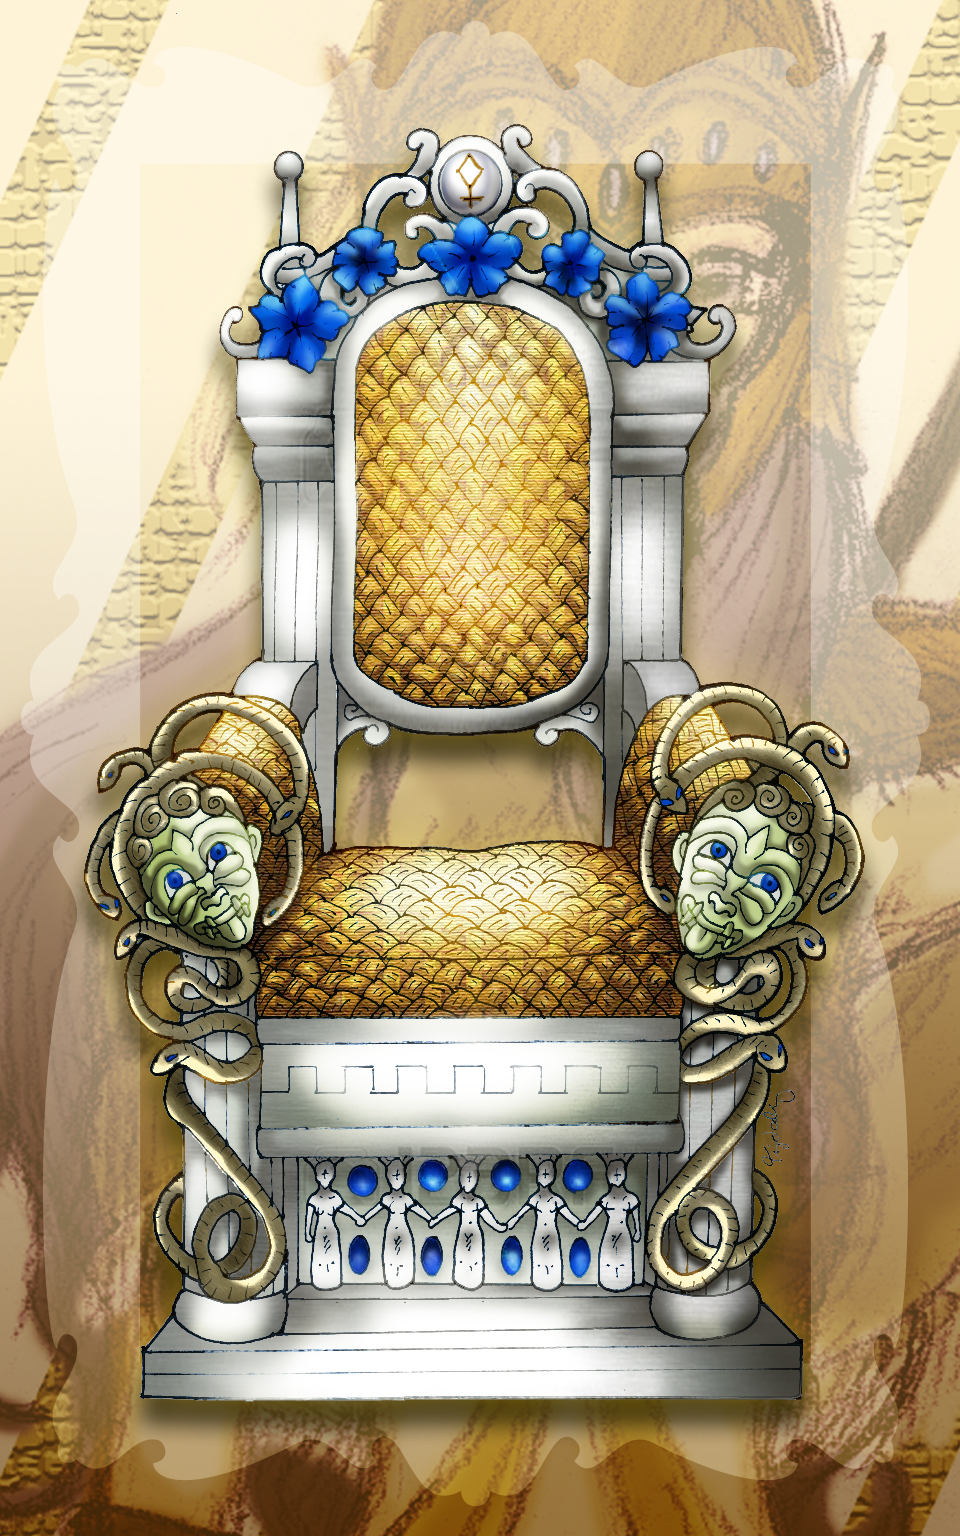 Athena's Throne of Intellect by lordaphaius28 on DeviantArt